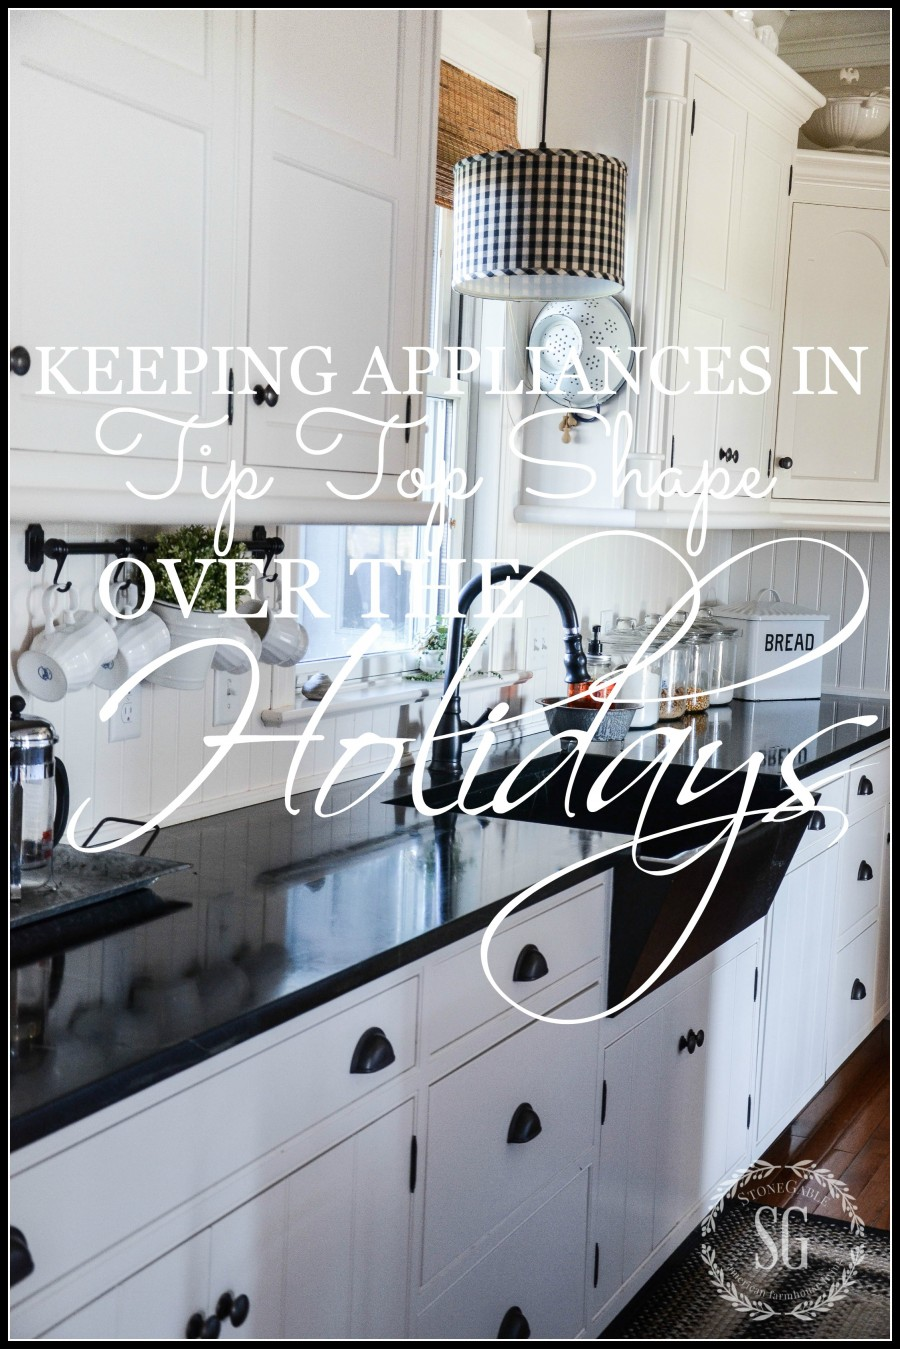 TIPS-FOR-KEEPING-APPLIANCES-IN-TIPS-TOP-SHAPE-FOR-THE-HOLIDAYS-1-stonegableblog